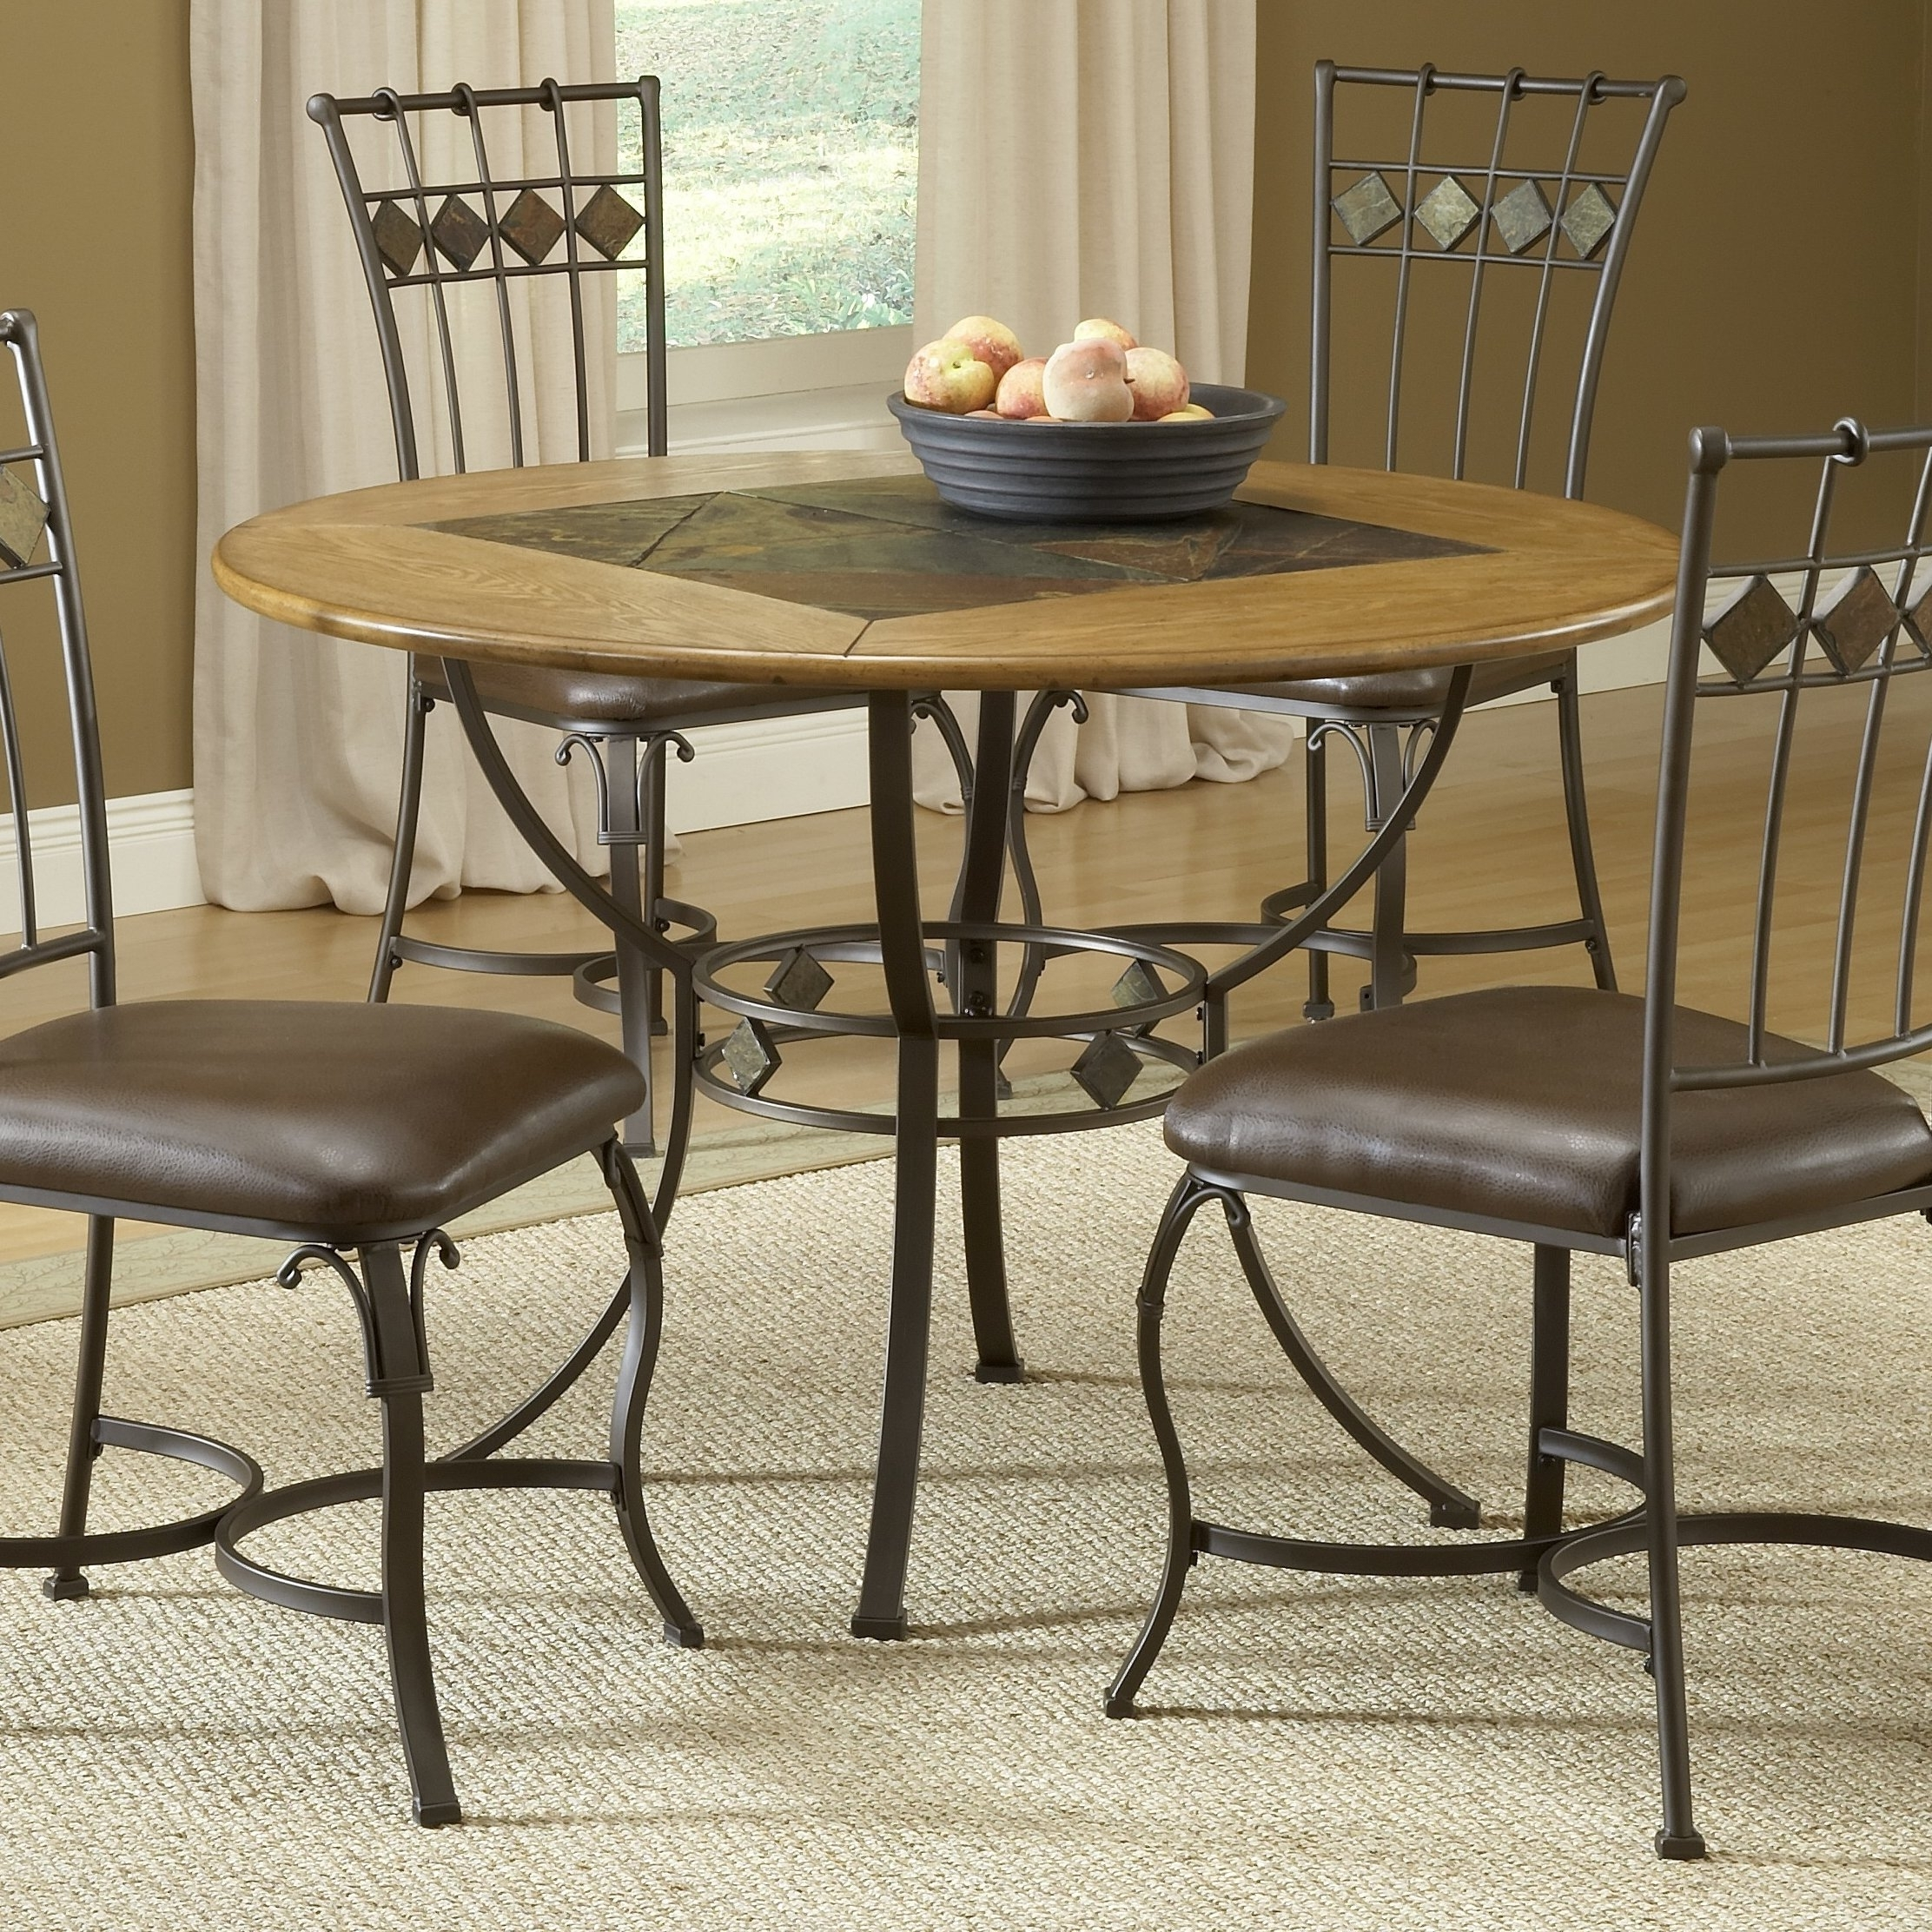 Wayfair Throughout Most Recently Released Caira 9 Piece Extension Dining Sets With Diamond Back Chairs (View 23 of 25)